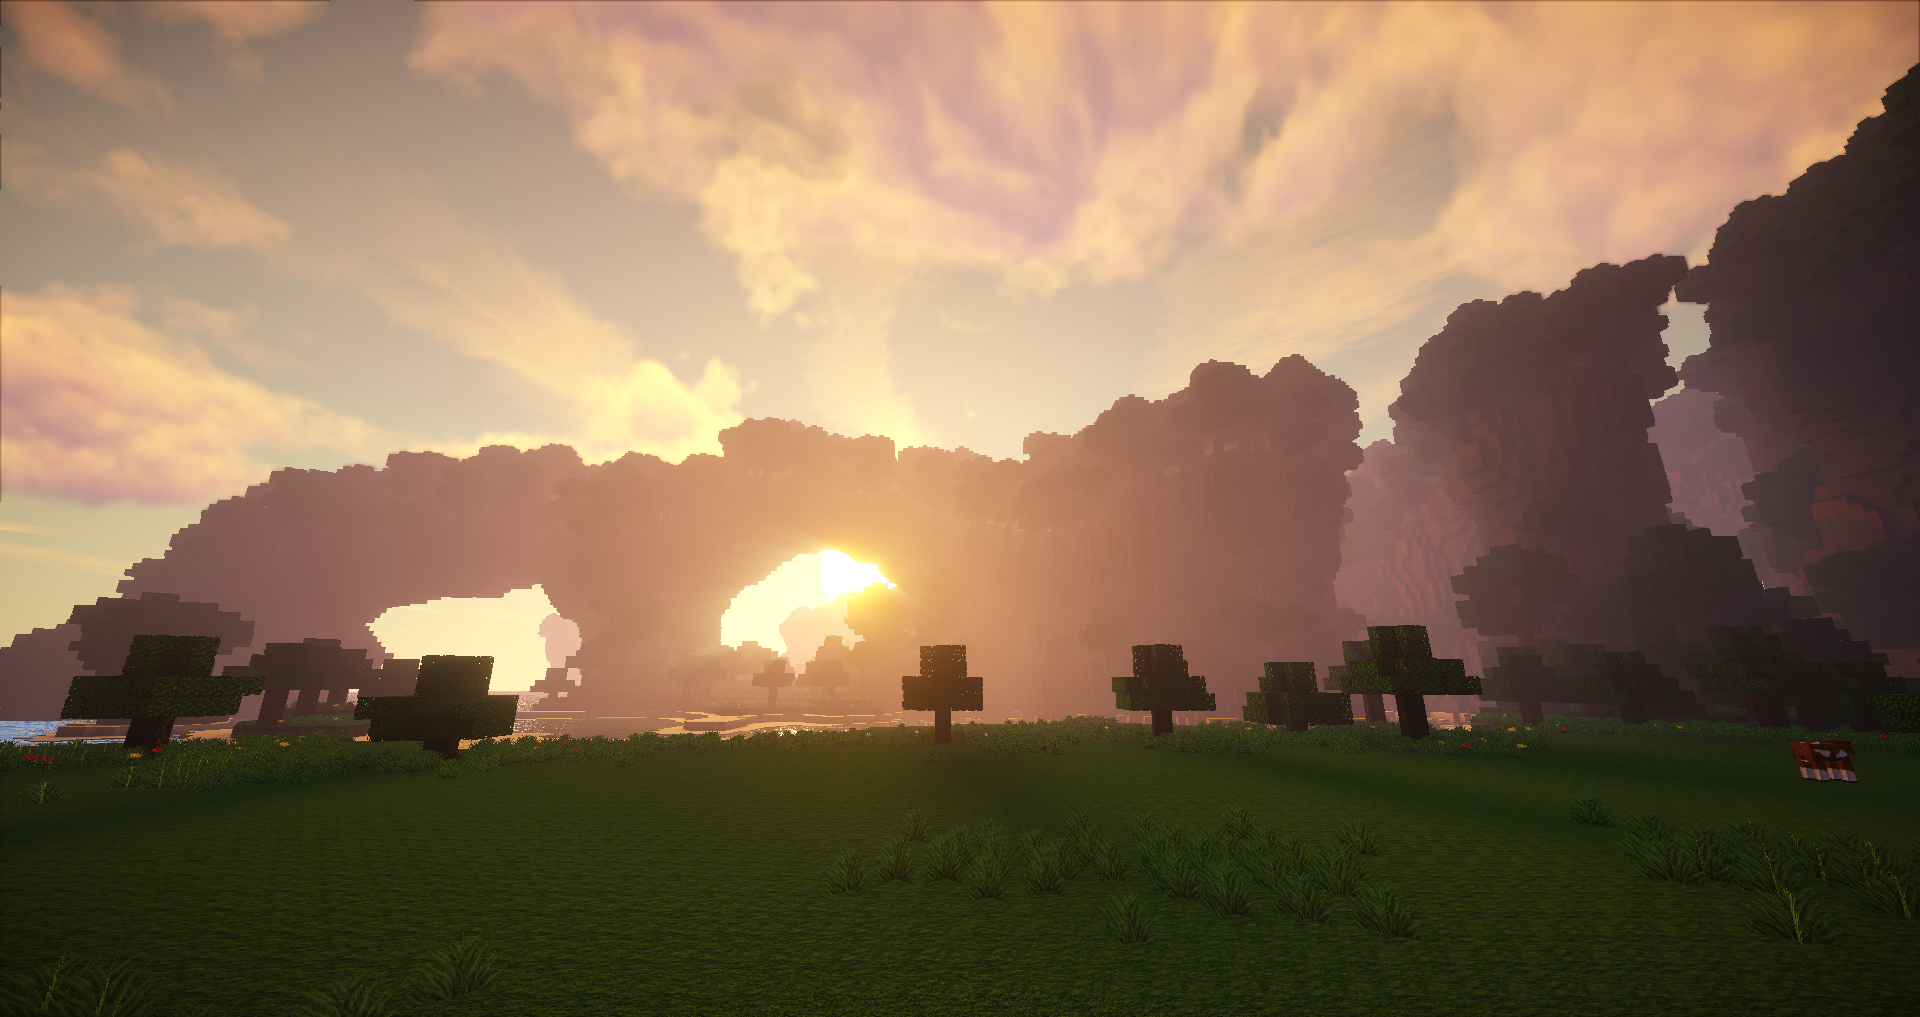 b8a4f503c9 [1.11] Continuum Shaders Mod Download